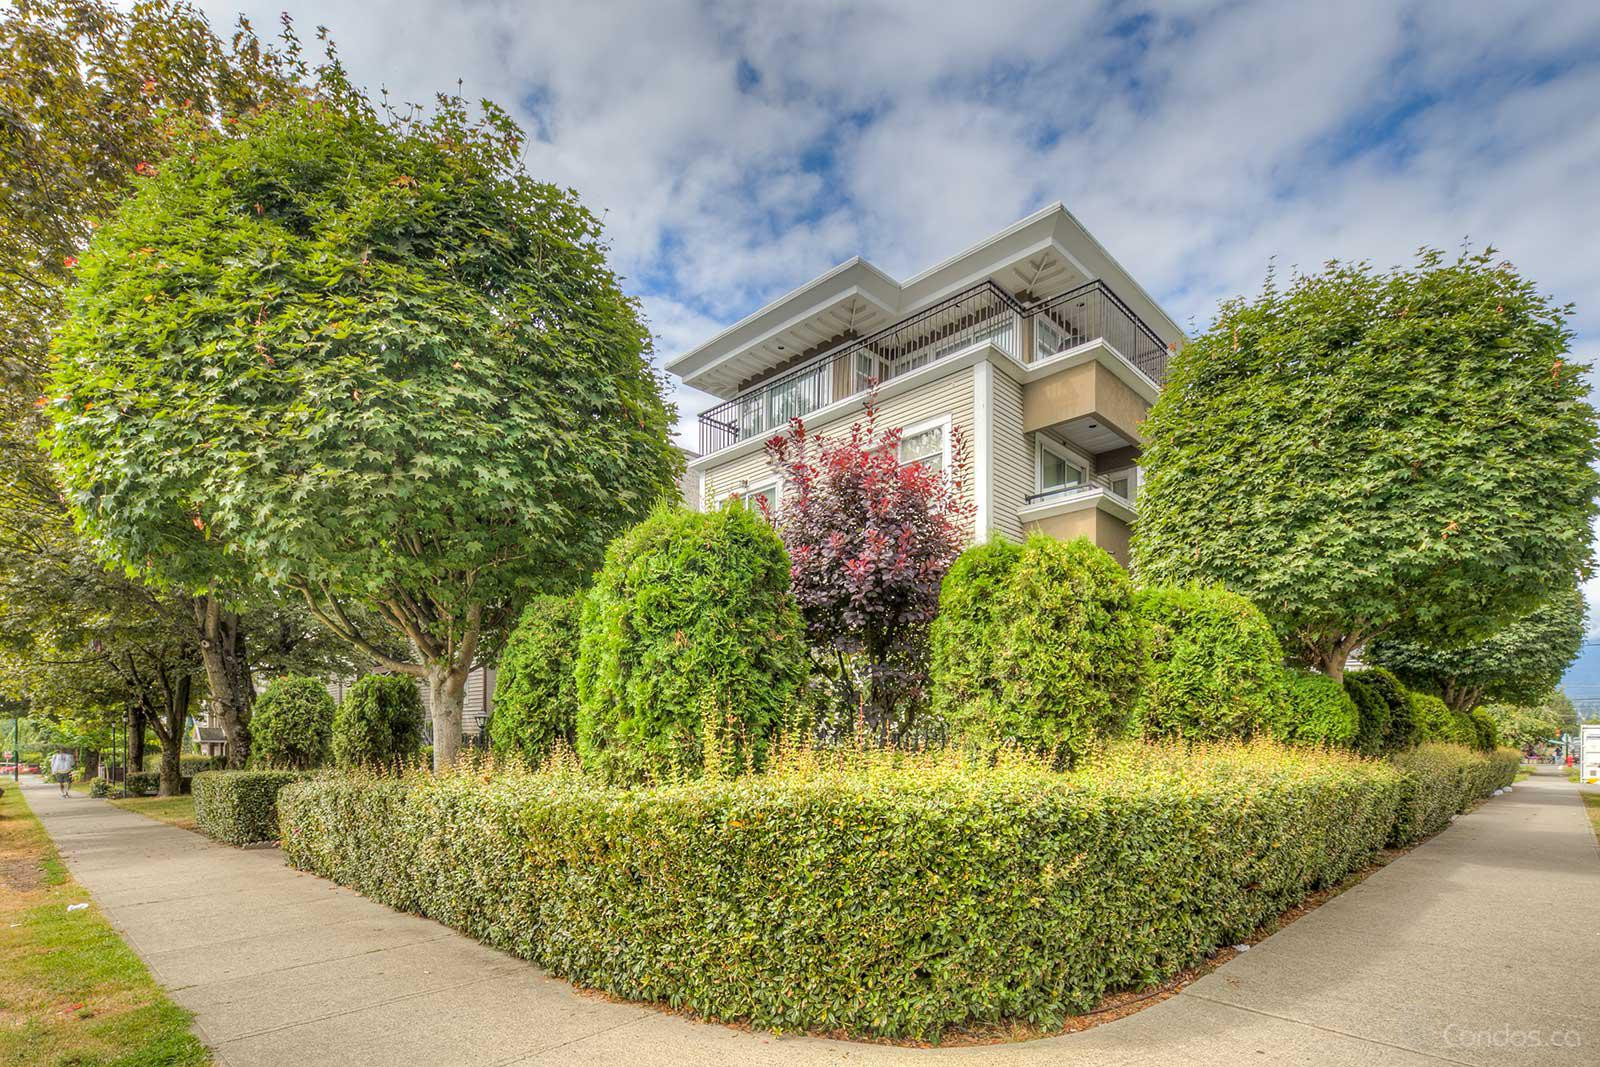 Templeton Heights at 29 Templeton Dr, Vancouver 0